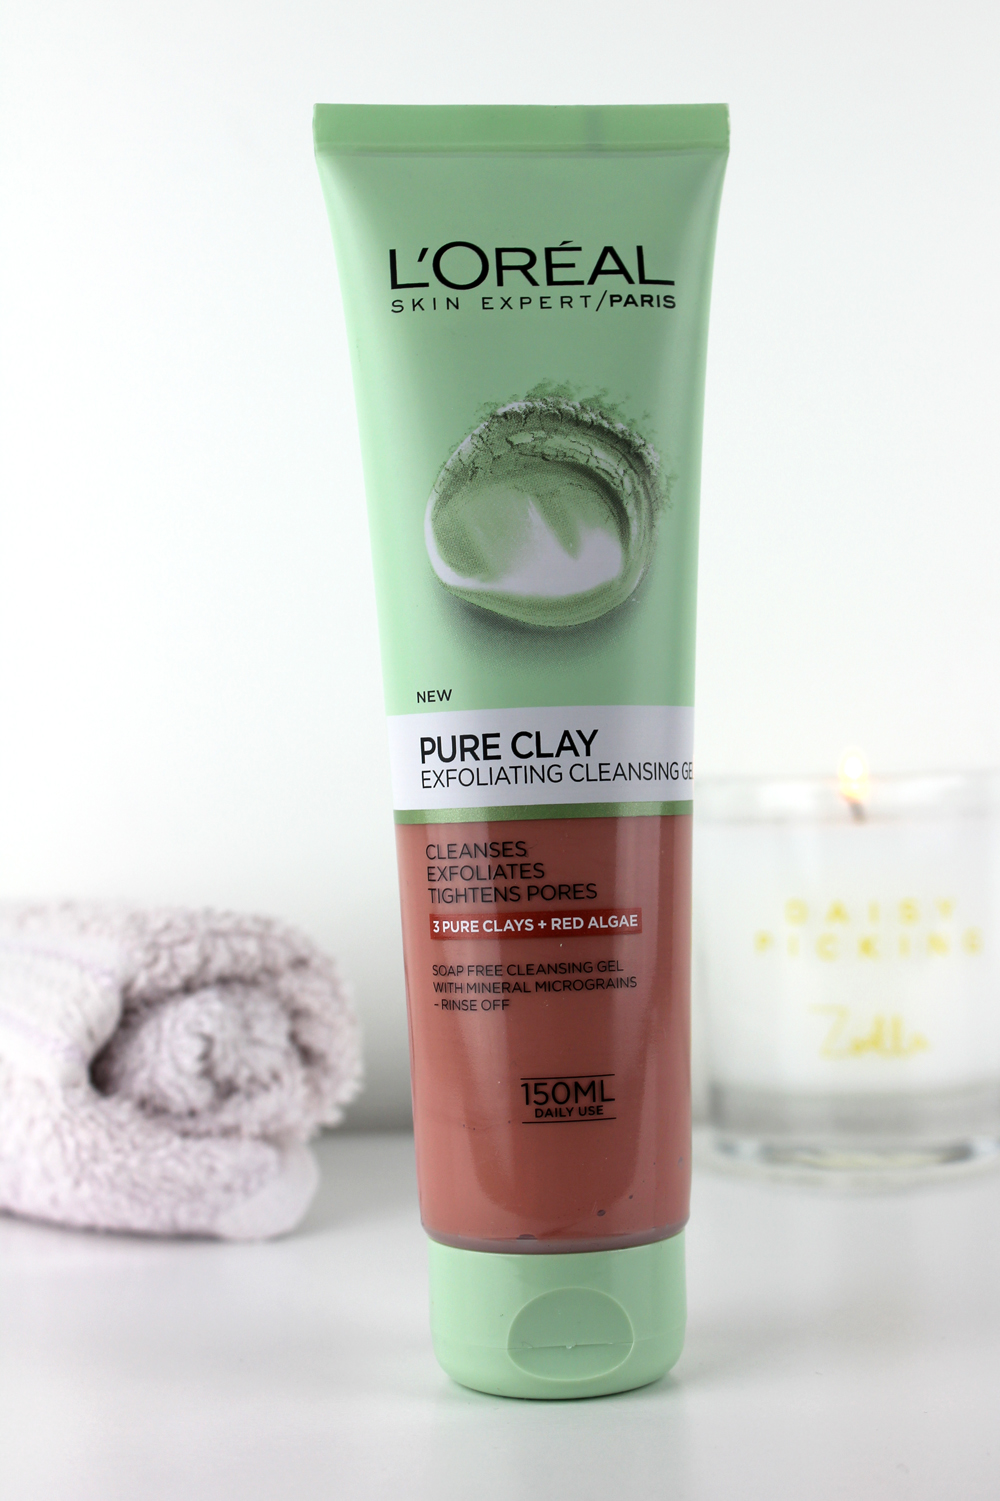 Loreal Pure Clay Exfoliating Cleansing Gel